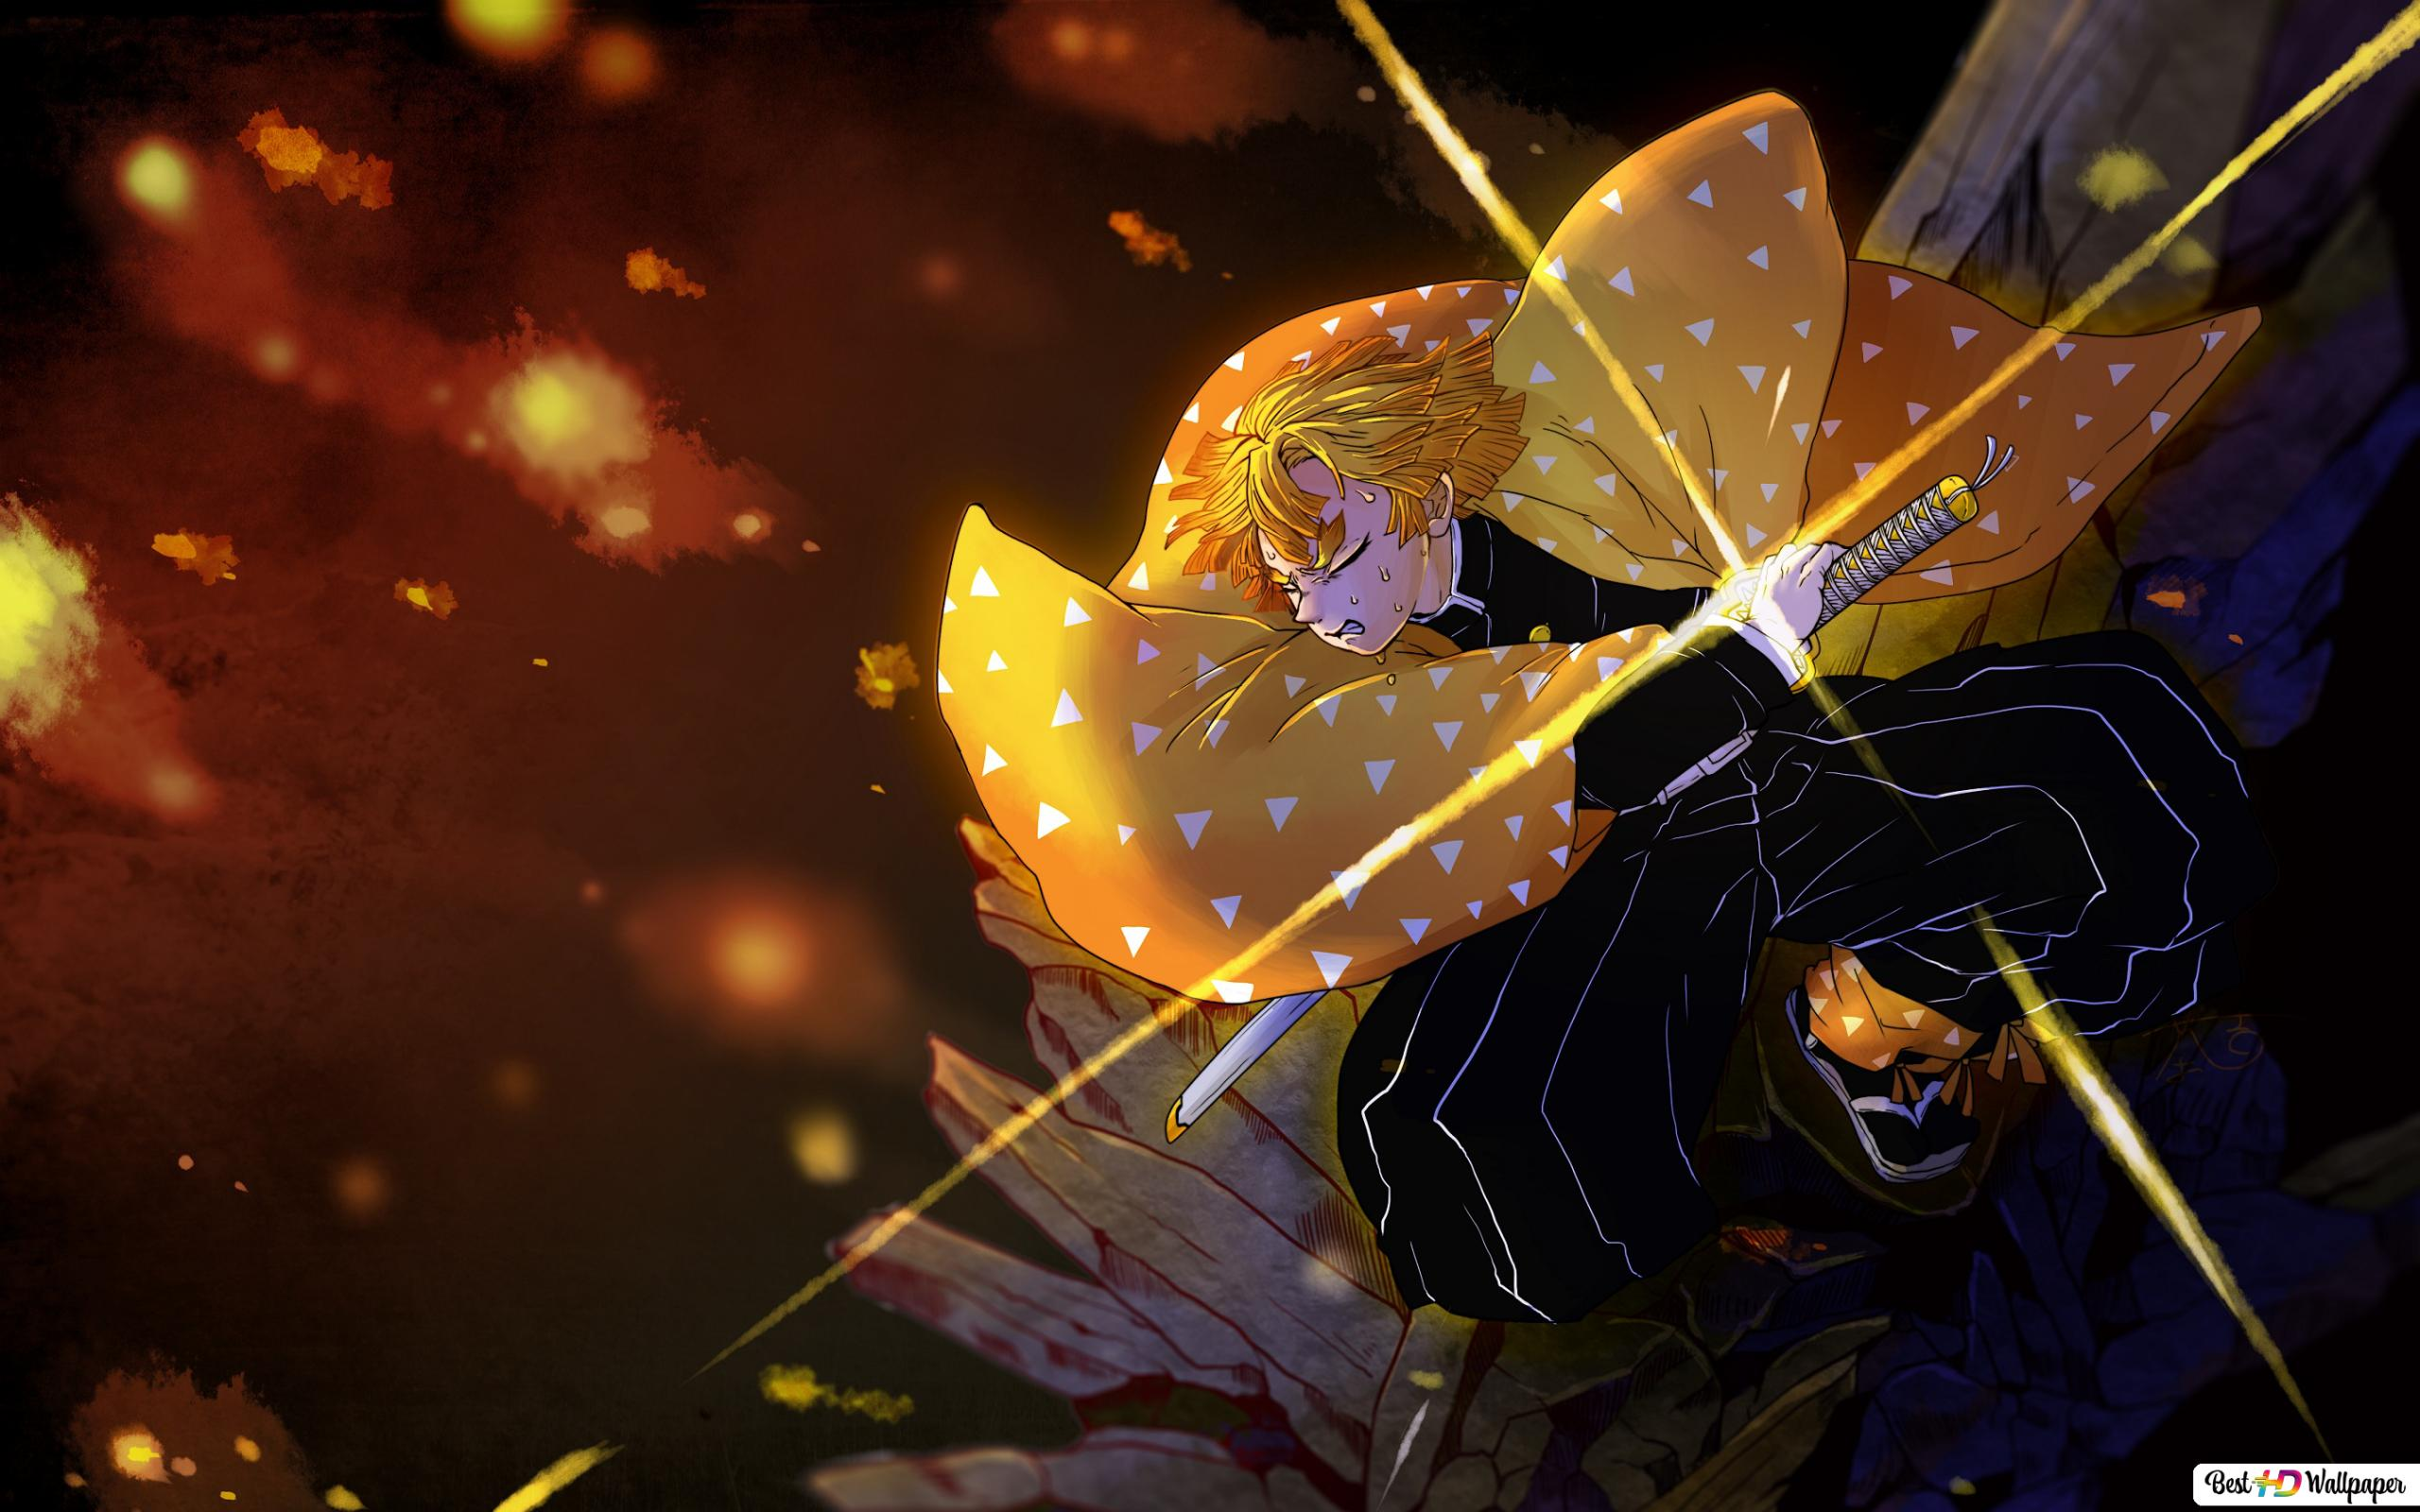 Demon Slayer Kimetsu No Yaiba Agatsuma Zenitsu Hd Wallpaper